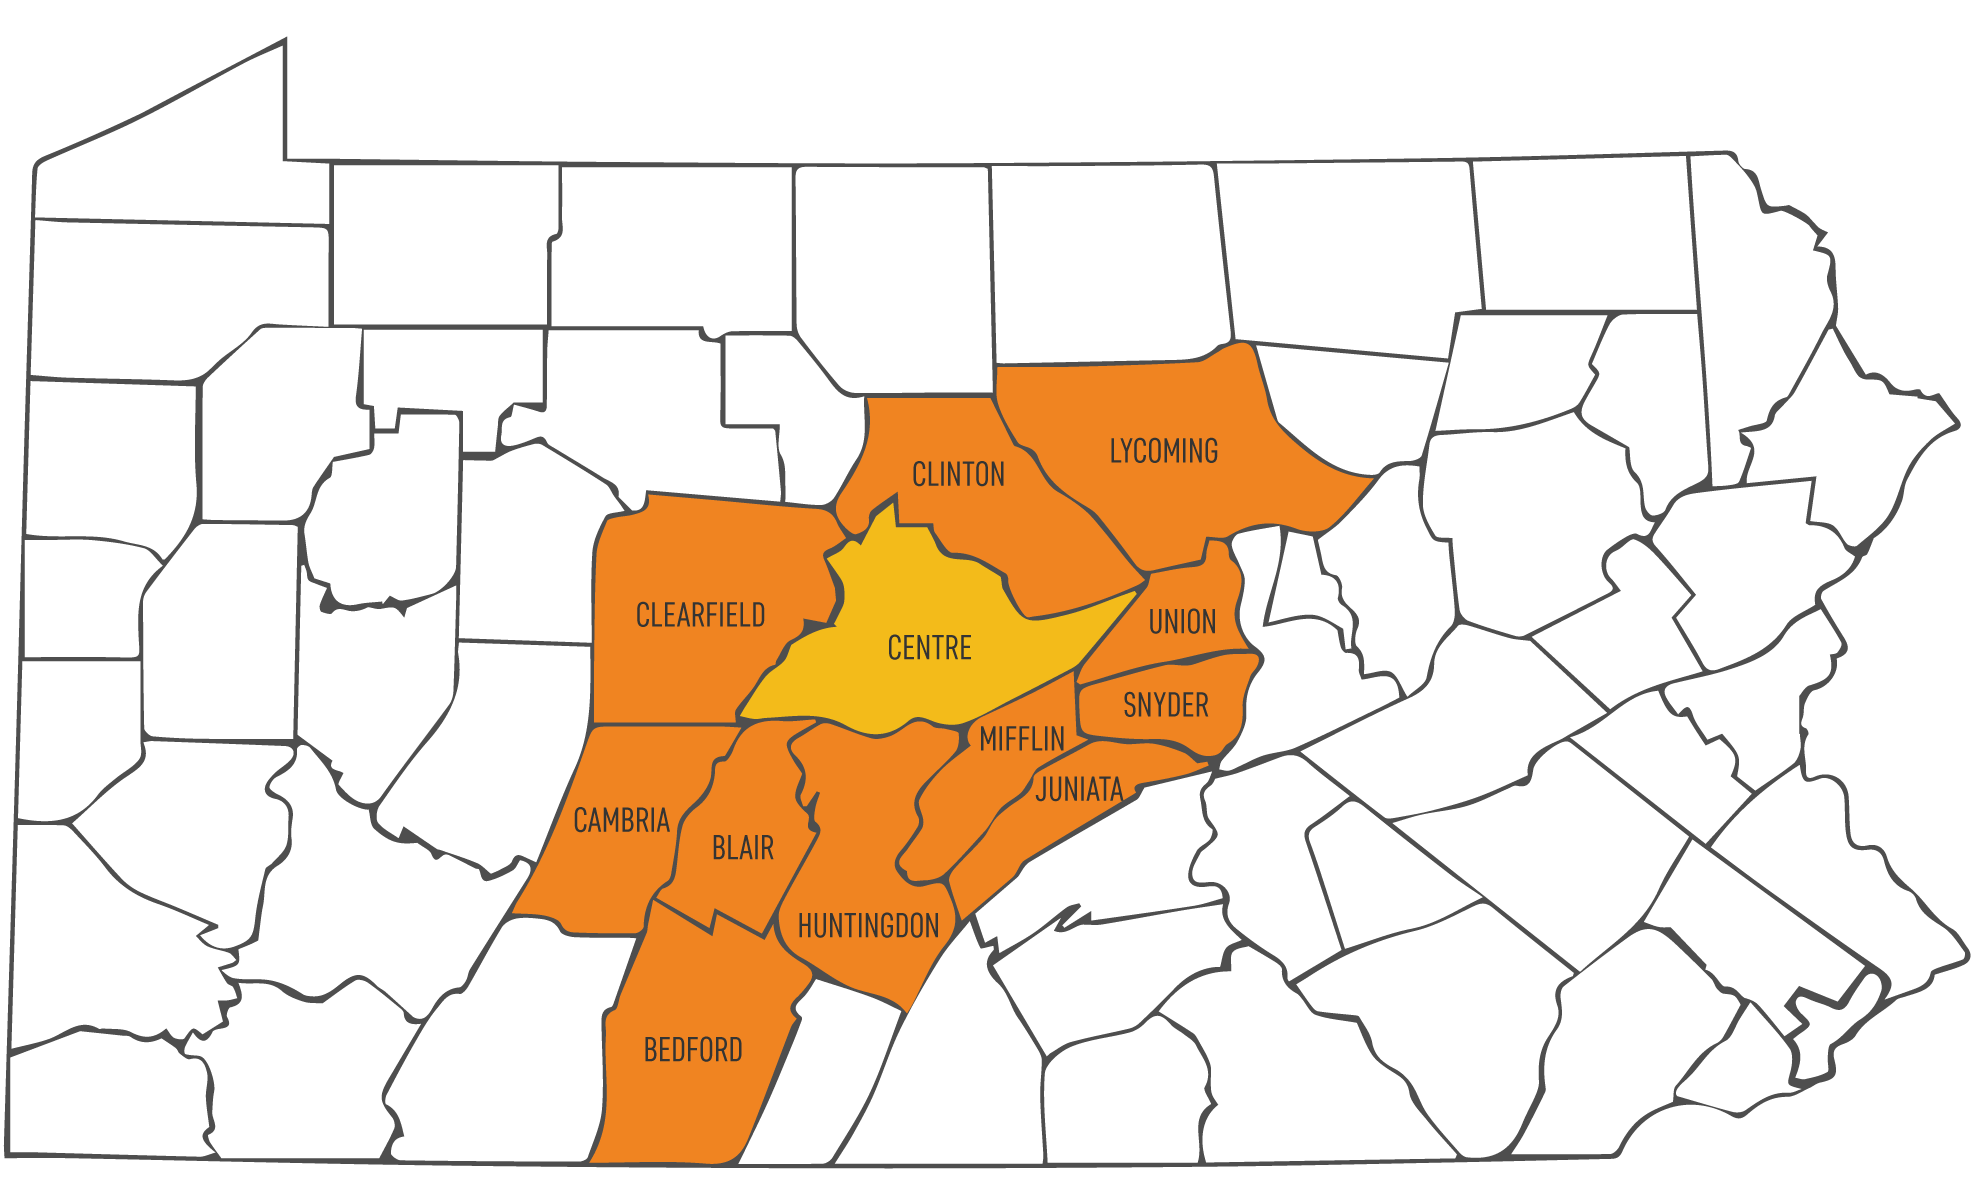 Services Area Map - Centre County, Clinton County, Lycoming County, Union County, Snyder County, Mifflin County, Juniata County, Huntingdon County, Bedford County, Blair County, Cambria County, and Clearfield County